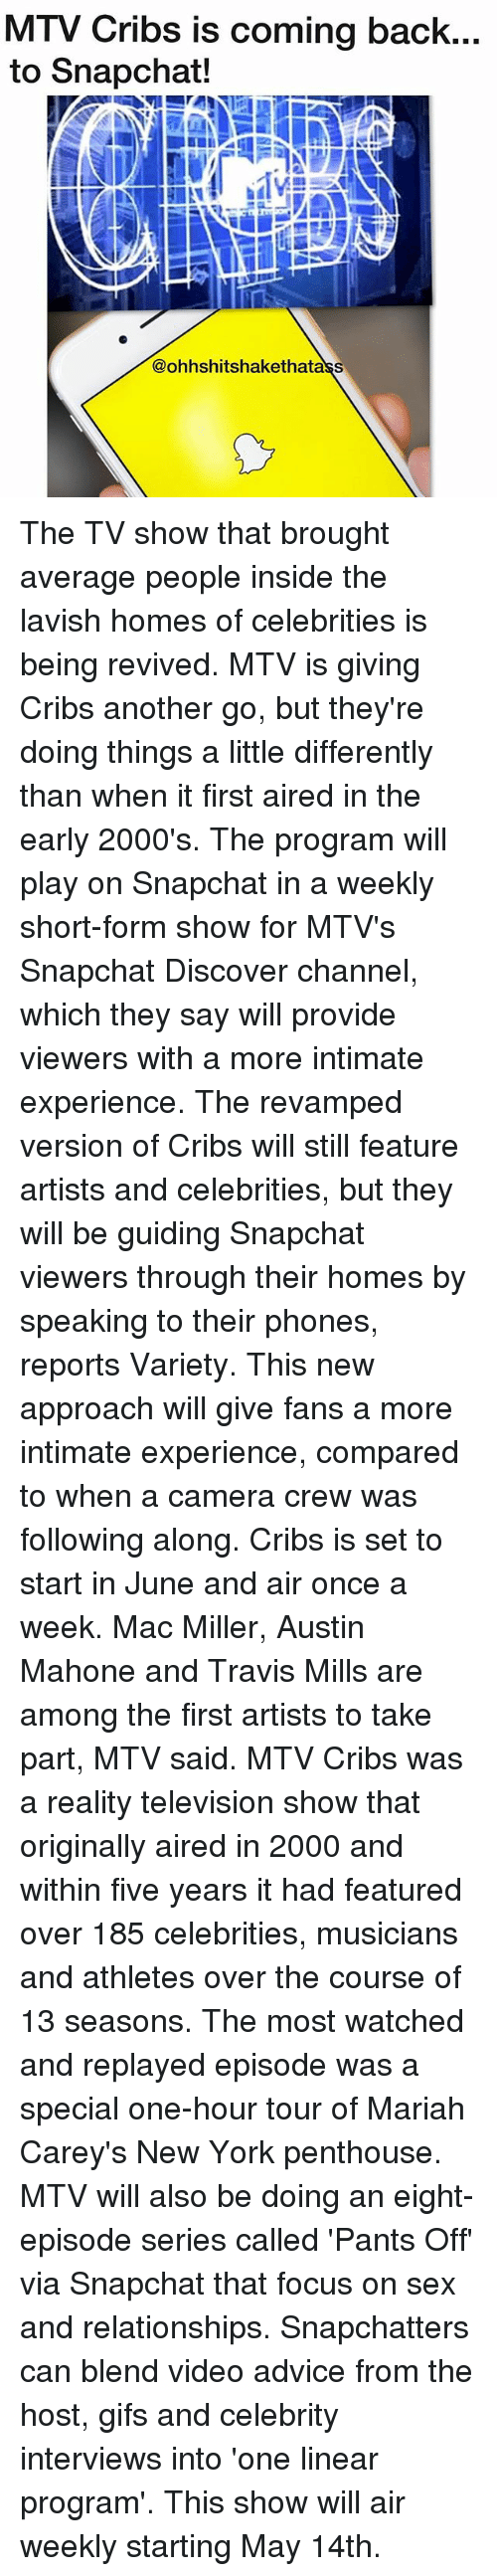 MTV Cribs Is Coming Back to Snapchat! the TV Show That